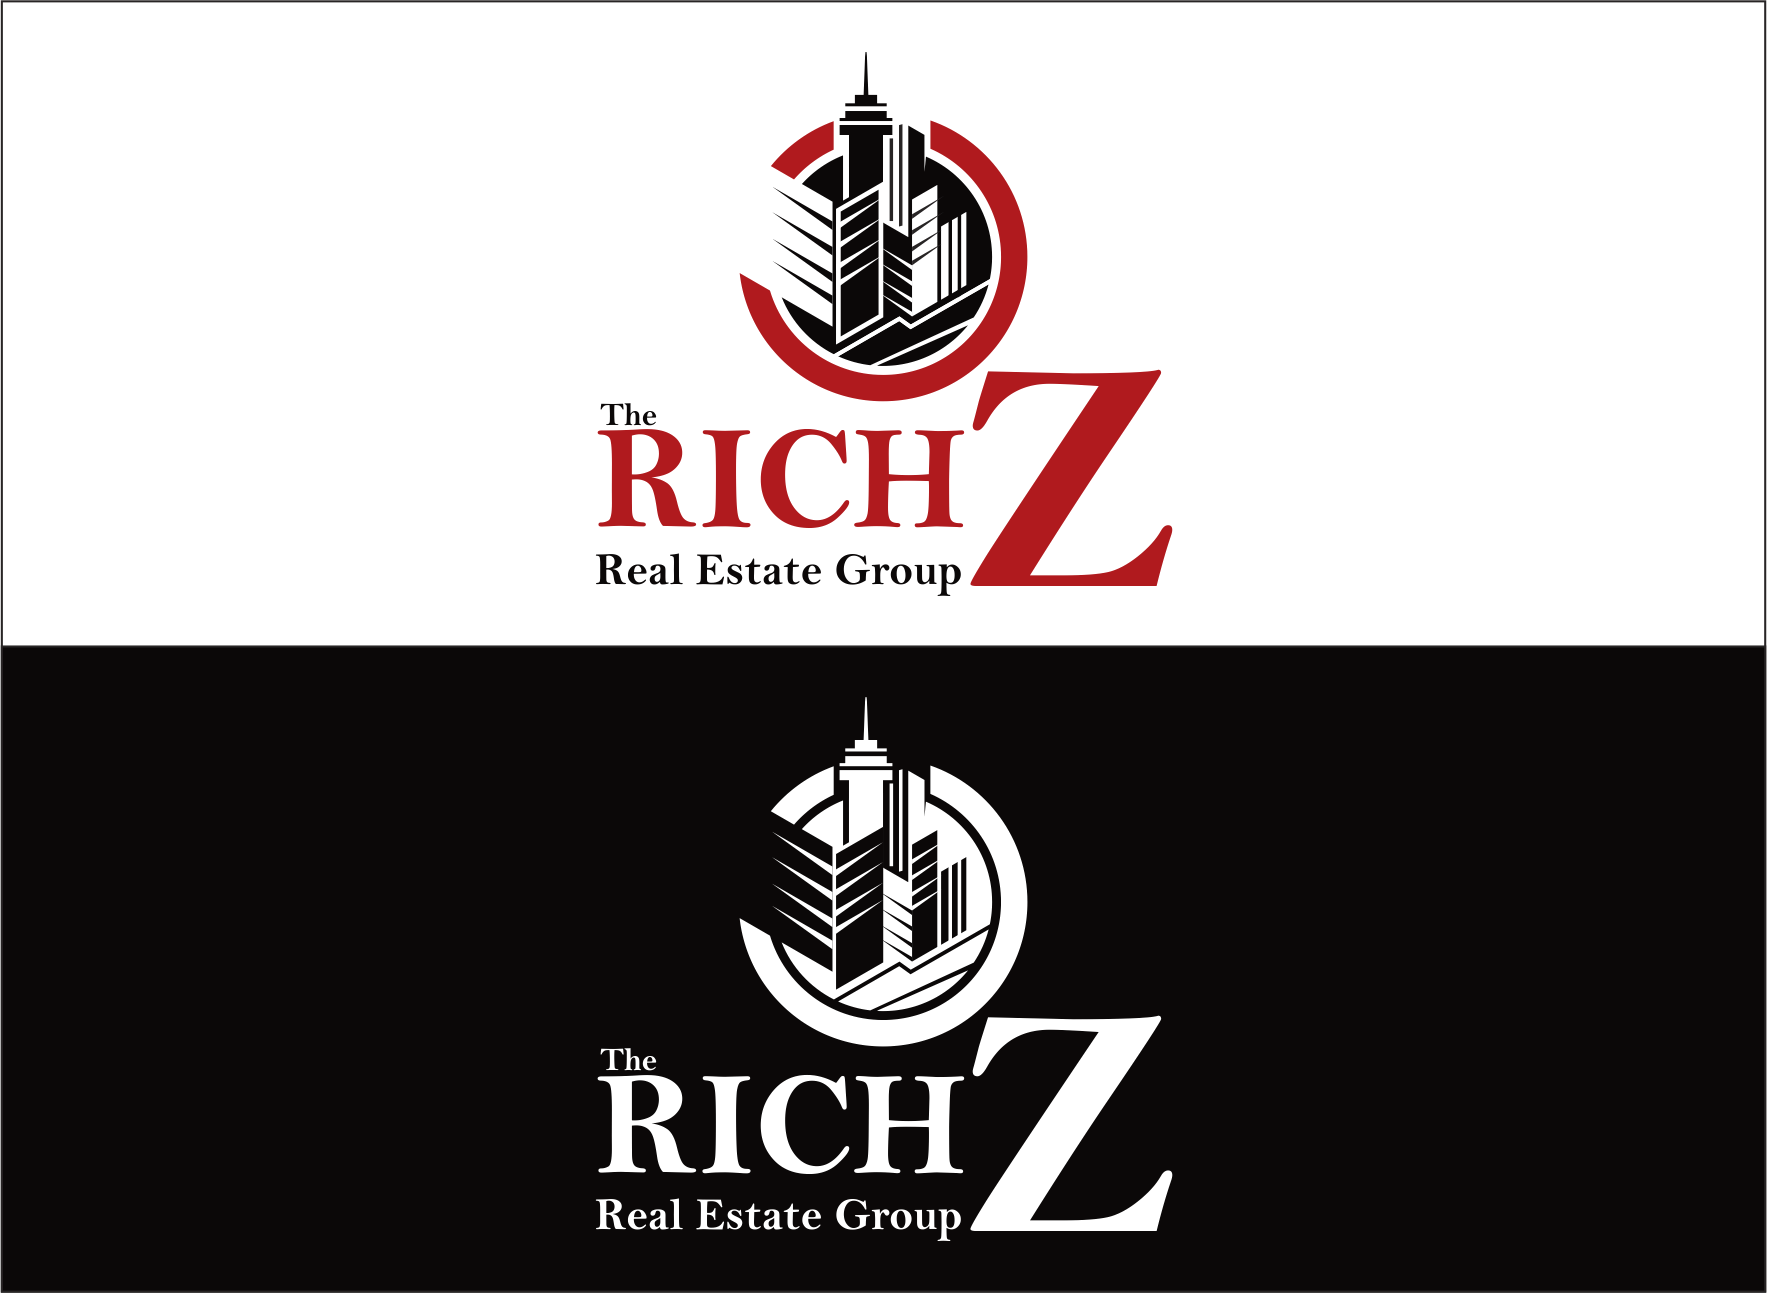 Logo Design by Armada Jamaluddin - Entry No. 410 in the Logo Design Contest The Rich Z. Real Estate Group Logo Design.